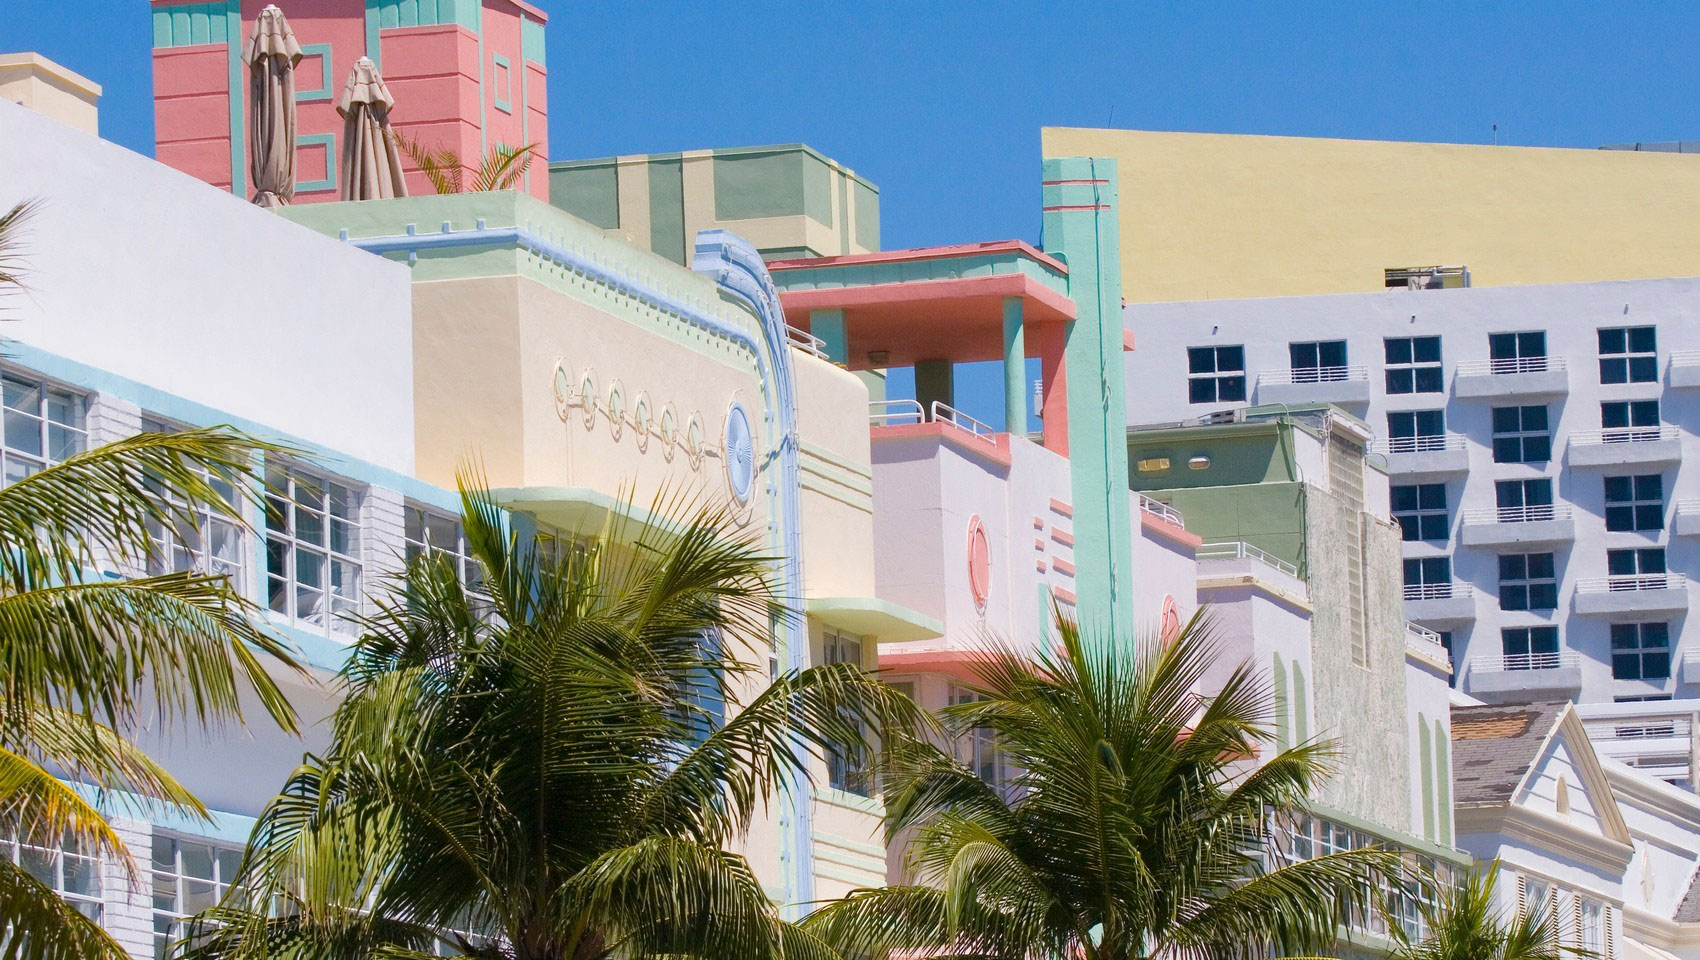 Location In The Sun Hotels On Collins Ave South Beach